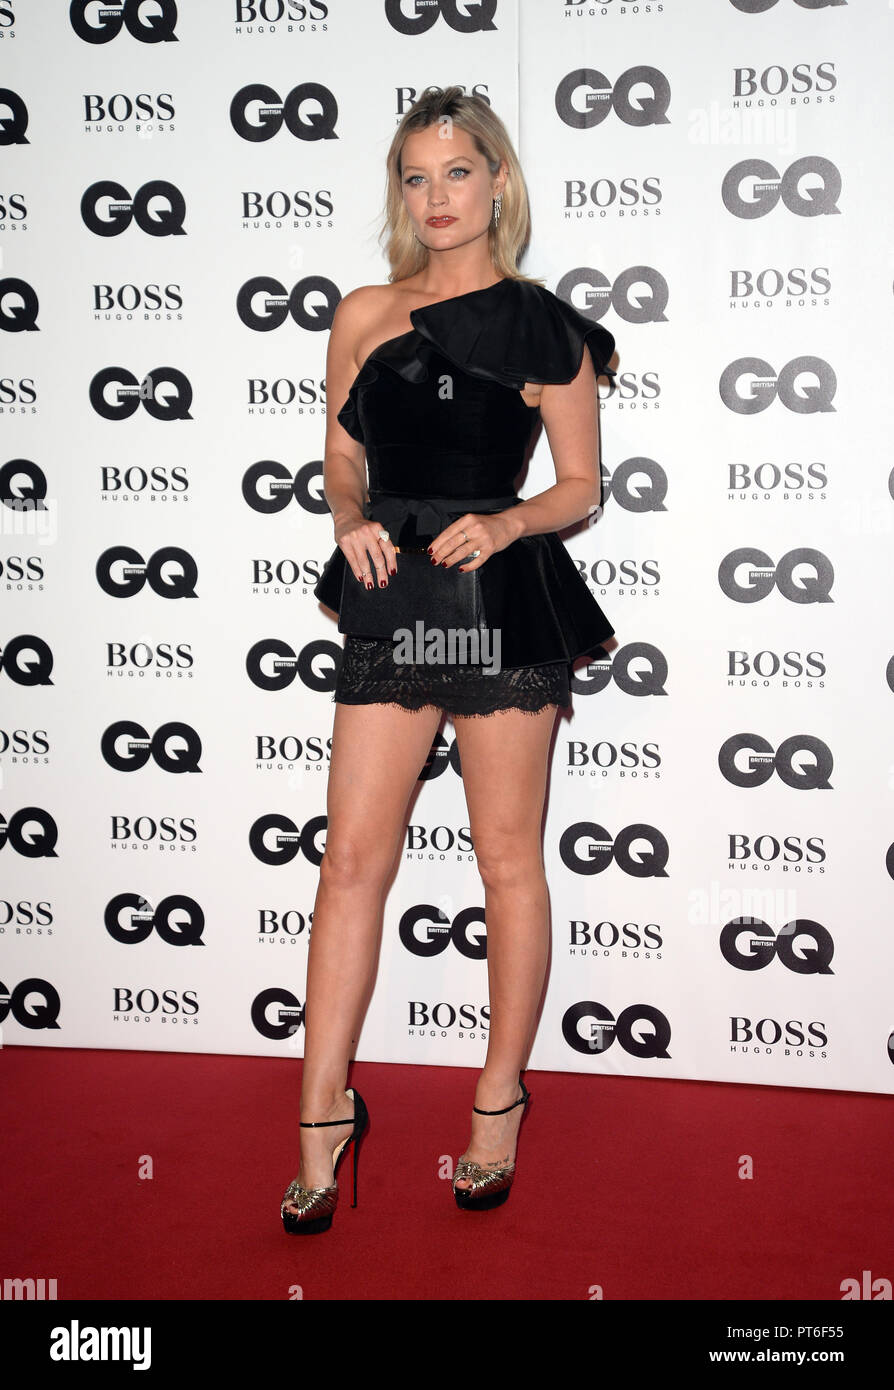 GQ Men Of The Year Awards  Featuring: Laura Whitmore Where: London, United Kingdom When: 05 Sep 2018 Credit: Tony Oudot/WENN - Stock Image